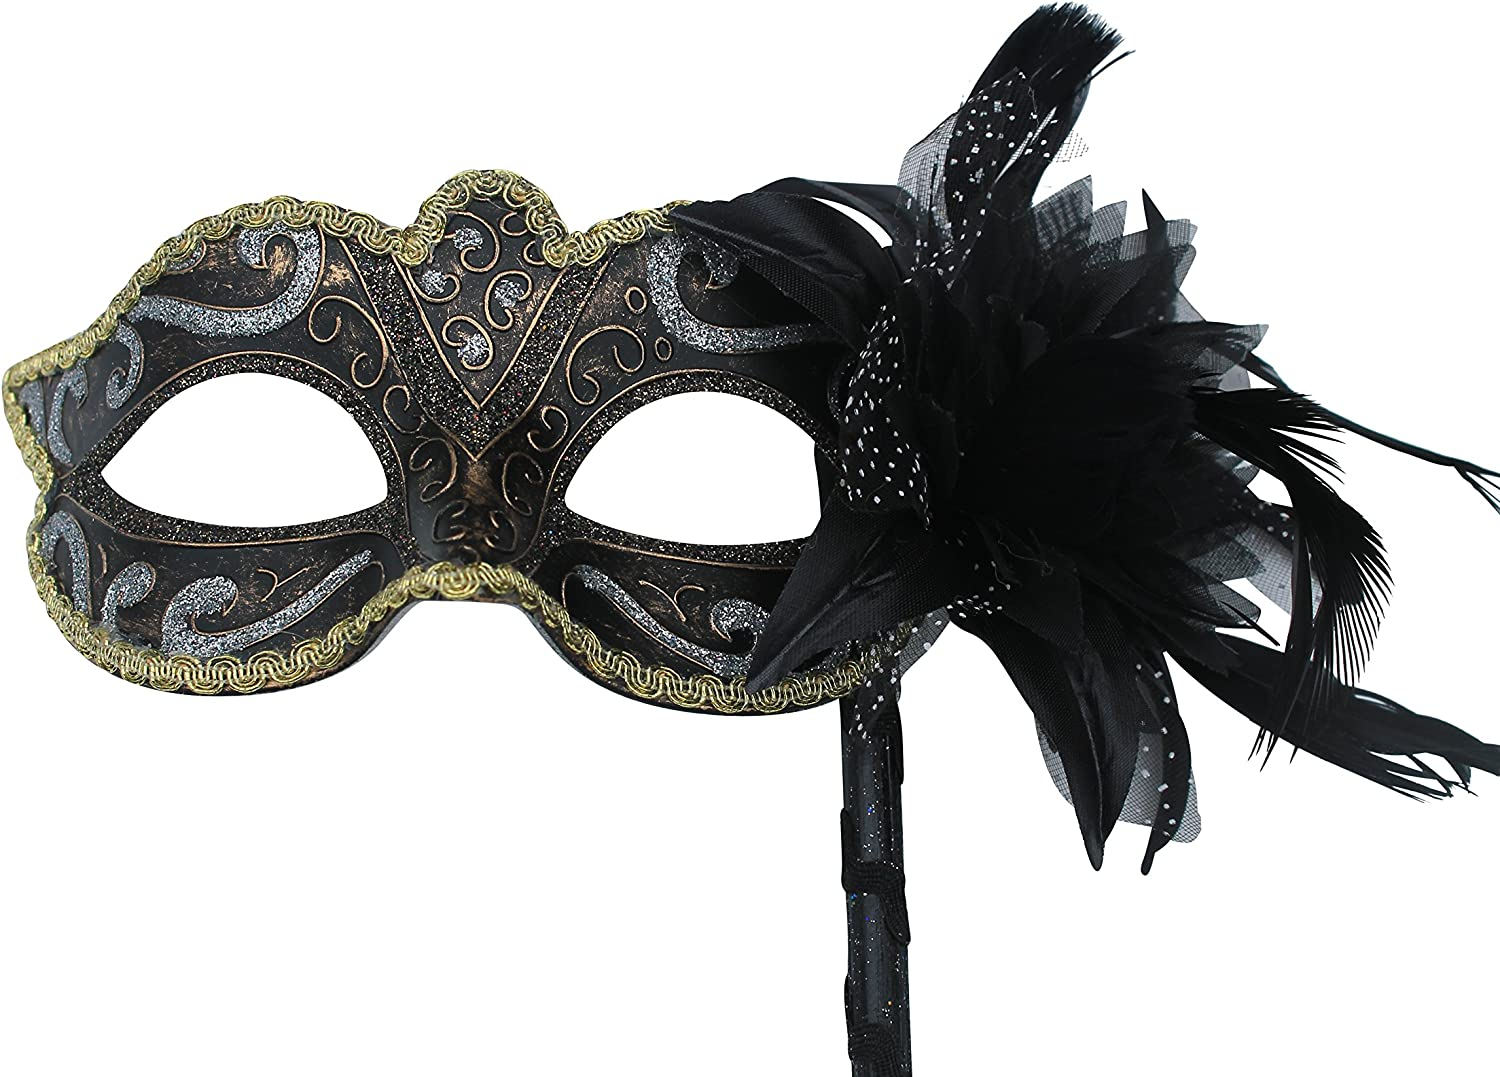 STUNNING BLACK AND SILVER VENETIAN MASQUERADE PARTY EYE MASK  A HAND HELD STICK